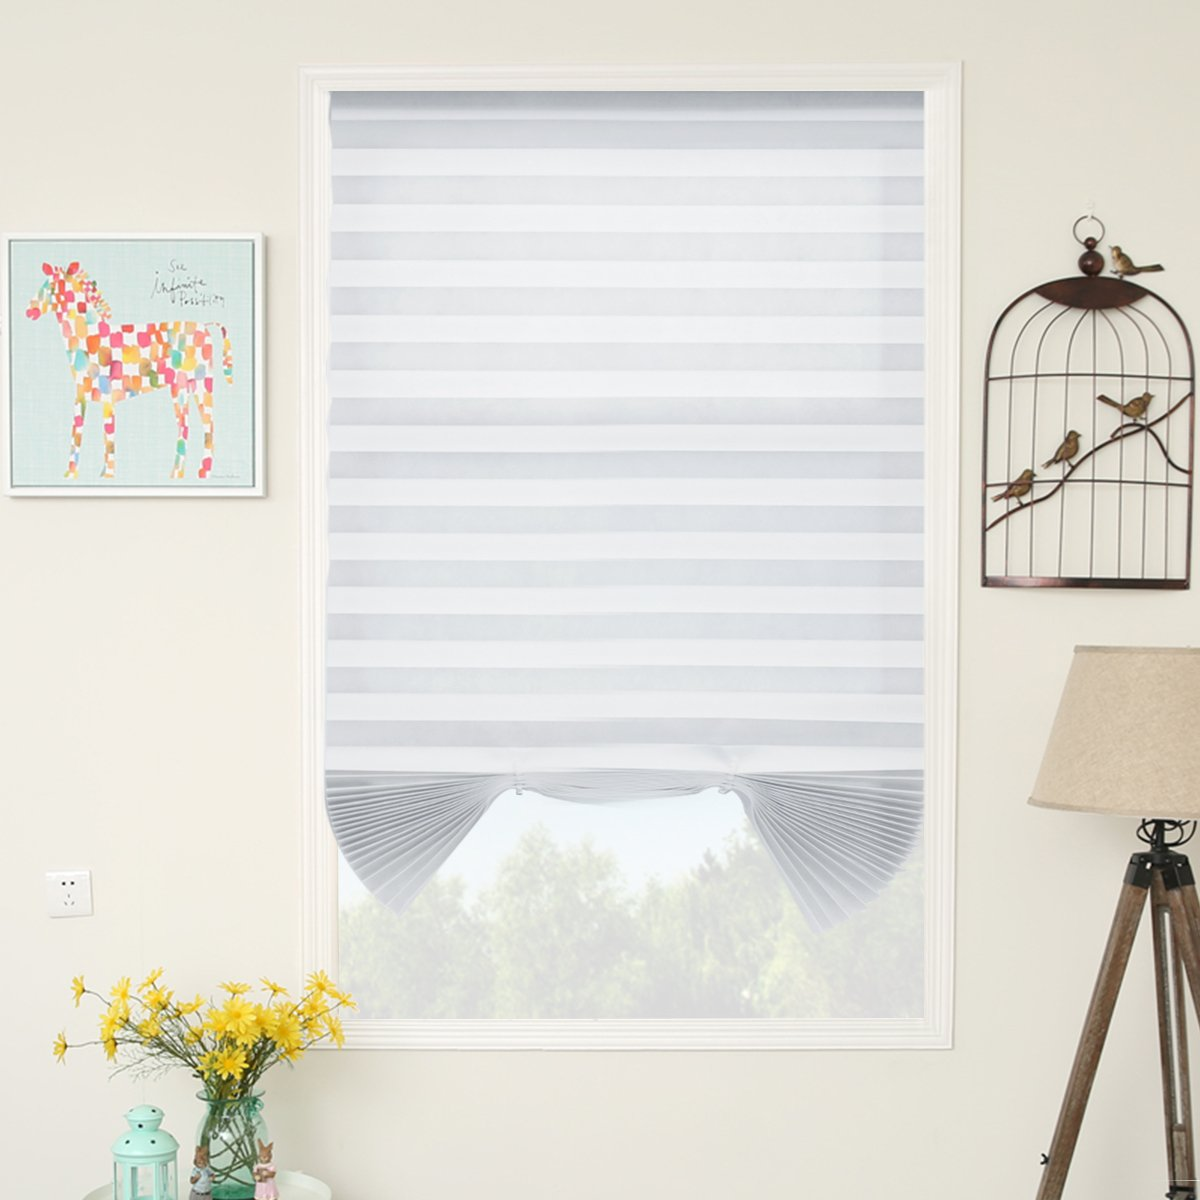 SUNFREE 6 Pack Temporary Blinds Window Shades Cordless Blinds Light Filtering Pleated Fabric Shade Easy to Cut and Install,36''x72''-6 Pack, White by SUNFREE